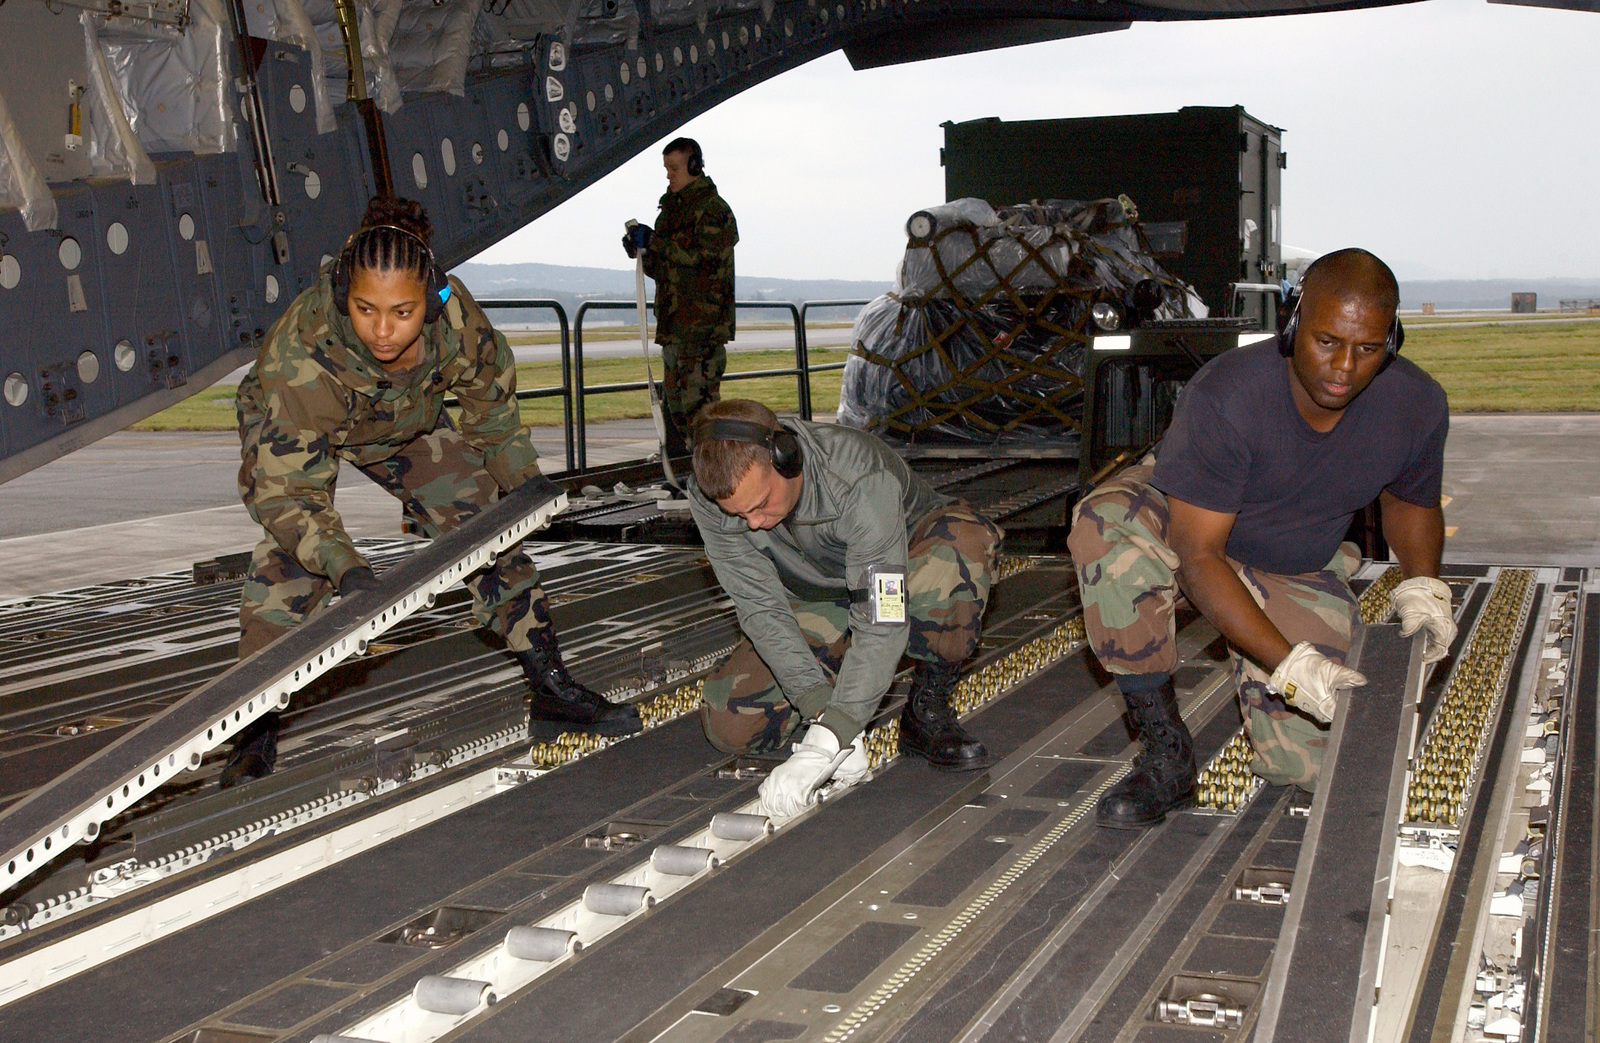 (From left-to-right), U.S. Air Force SENIOR AIRMAN Aqueelah Lucas, AIRMAN 1ST Class James Miller and STAFF SGT. Robert Carter, all members of the 733rd Air Mobility Squadron, Kadena Air Base (AB), Japan, reconfigure the floor C-17 Globemaster III cargo aircraft from the 62nd Airlift Wing, McChord Air Force Base, Wash., during Operation Unified Assistance at Kadena AB on Jan. 9, 2005. More than 18,000 U.S. military personnel are providing humanitarian assistance in Southwest Asia after a 9.0 magnitude earthquake on Dec. 26, 2004, triggered devastating tsunamis that killed over 250,000 people in the region. (USAF PHOTO by AIRMAN 1ST Class Michael Pallazola) (Released)